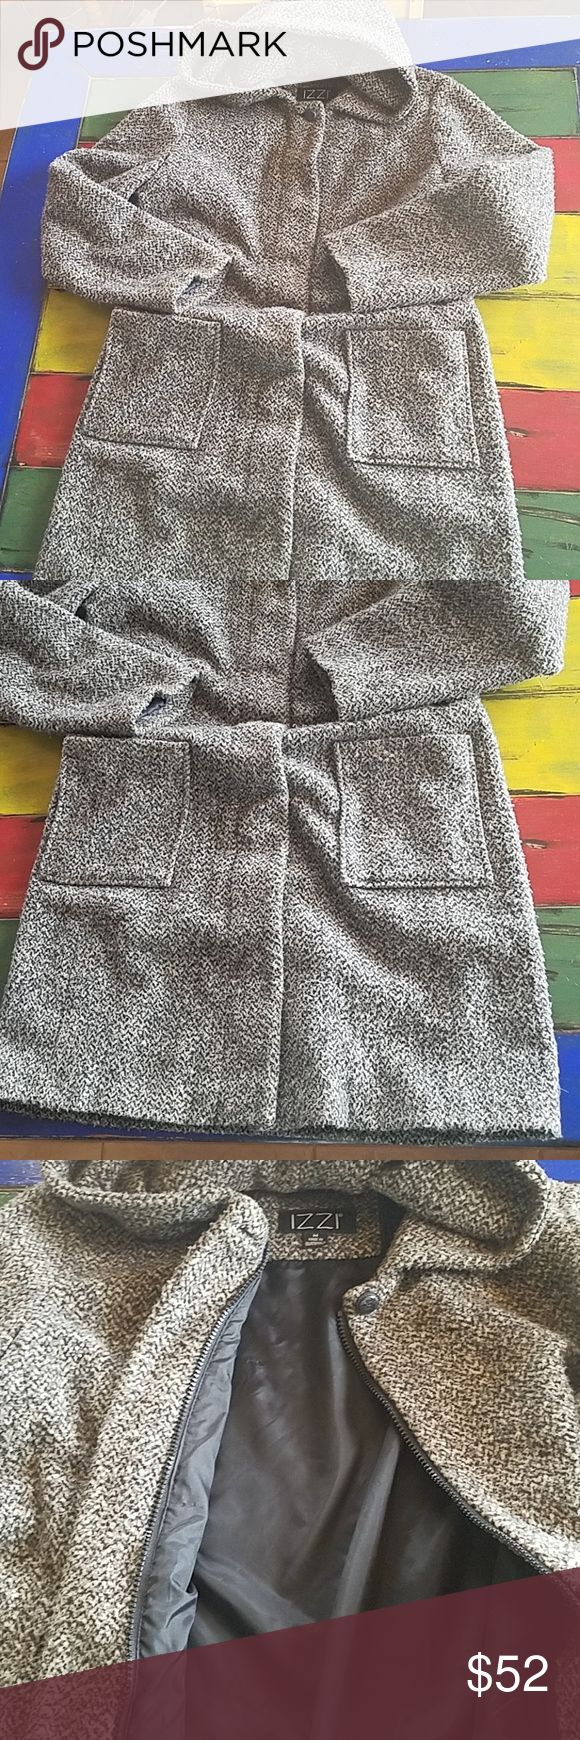 Izzi Coat M Great Winter Coat A Few Very Minor Scratches On Inside Lining Other Than That It S In Great Condi Clothes Design Fashion Design Fashion Tips [ 1740 x 580 Pixel ]